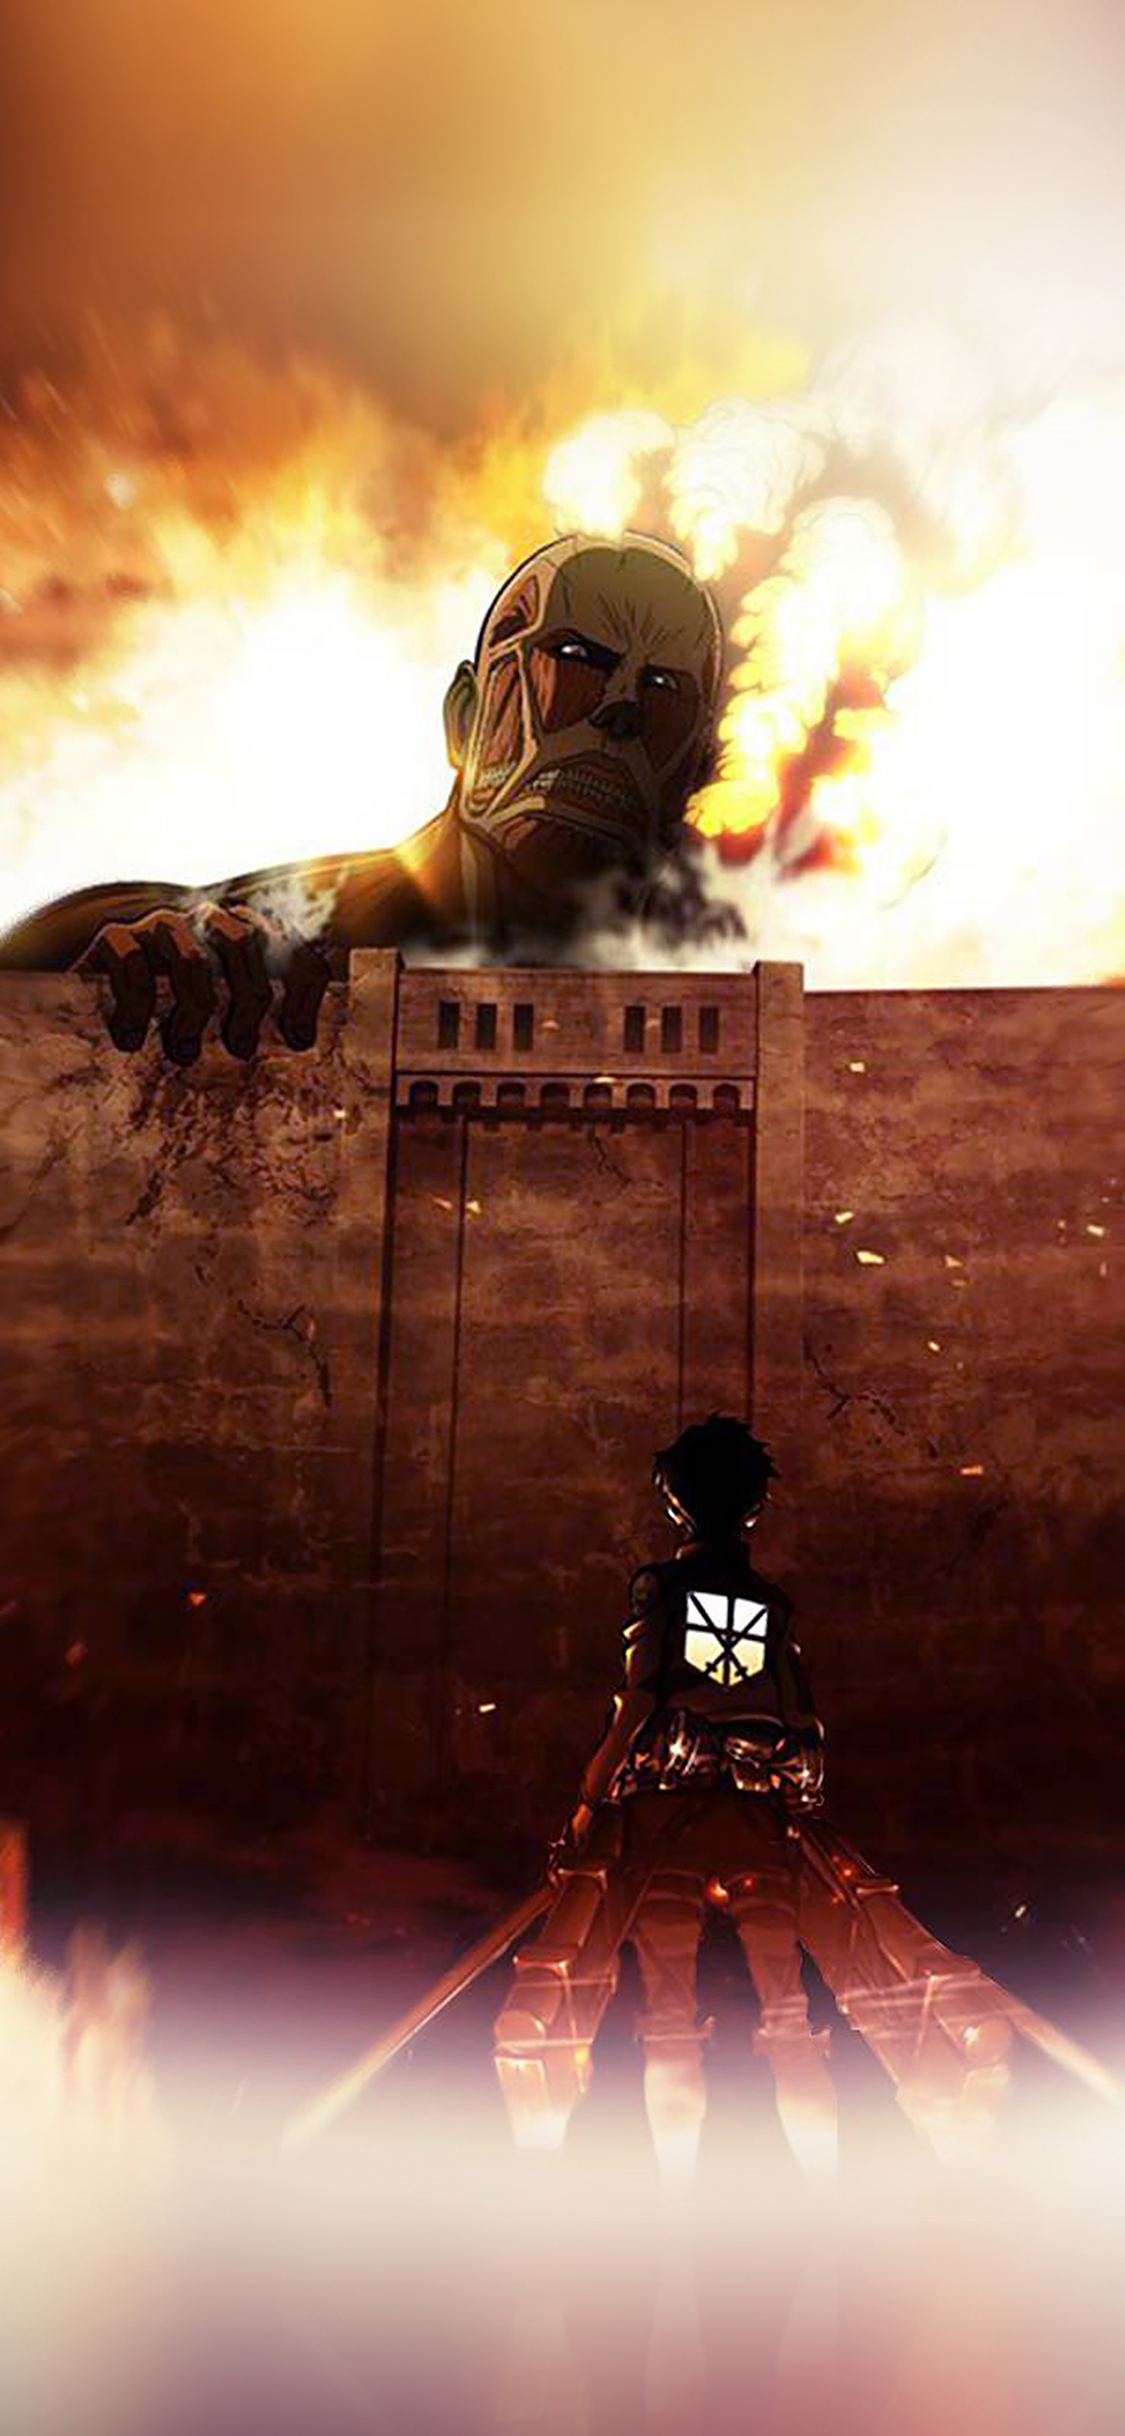 Yuriko nakao/getty images attack on titan is a popular anime series that has also spawned movies and video games. iPhoneXpapers.com-Apple-iPhone-wallpaper-ah30-attack-on ...